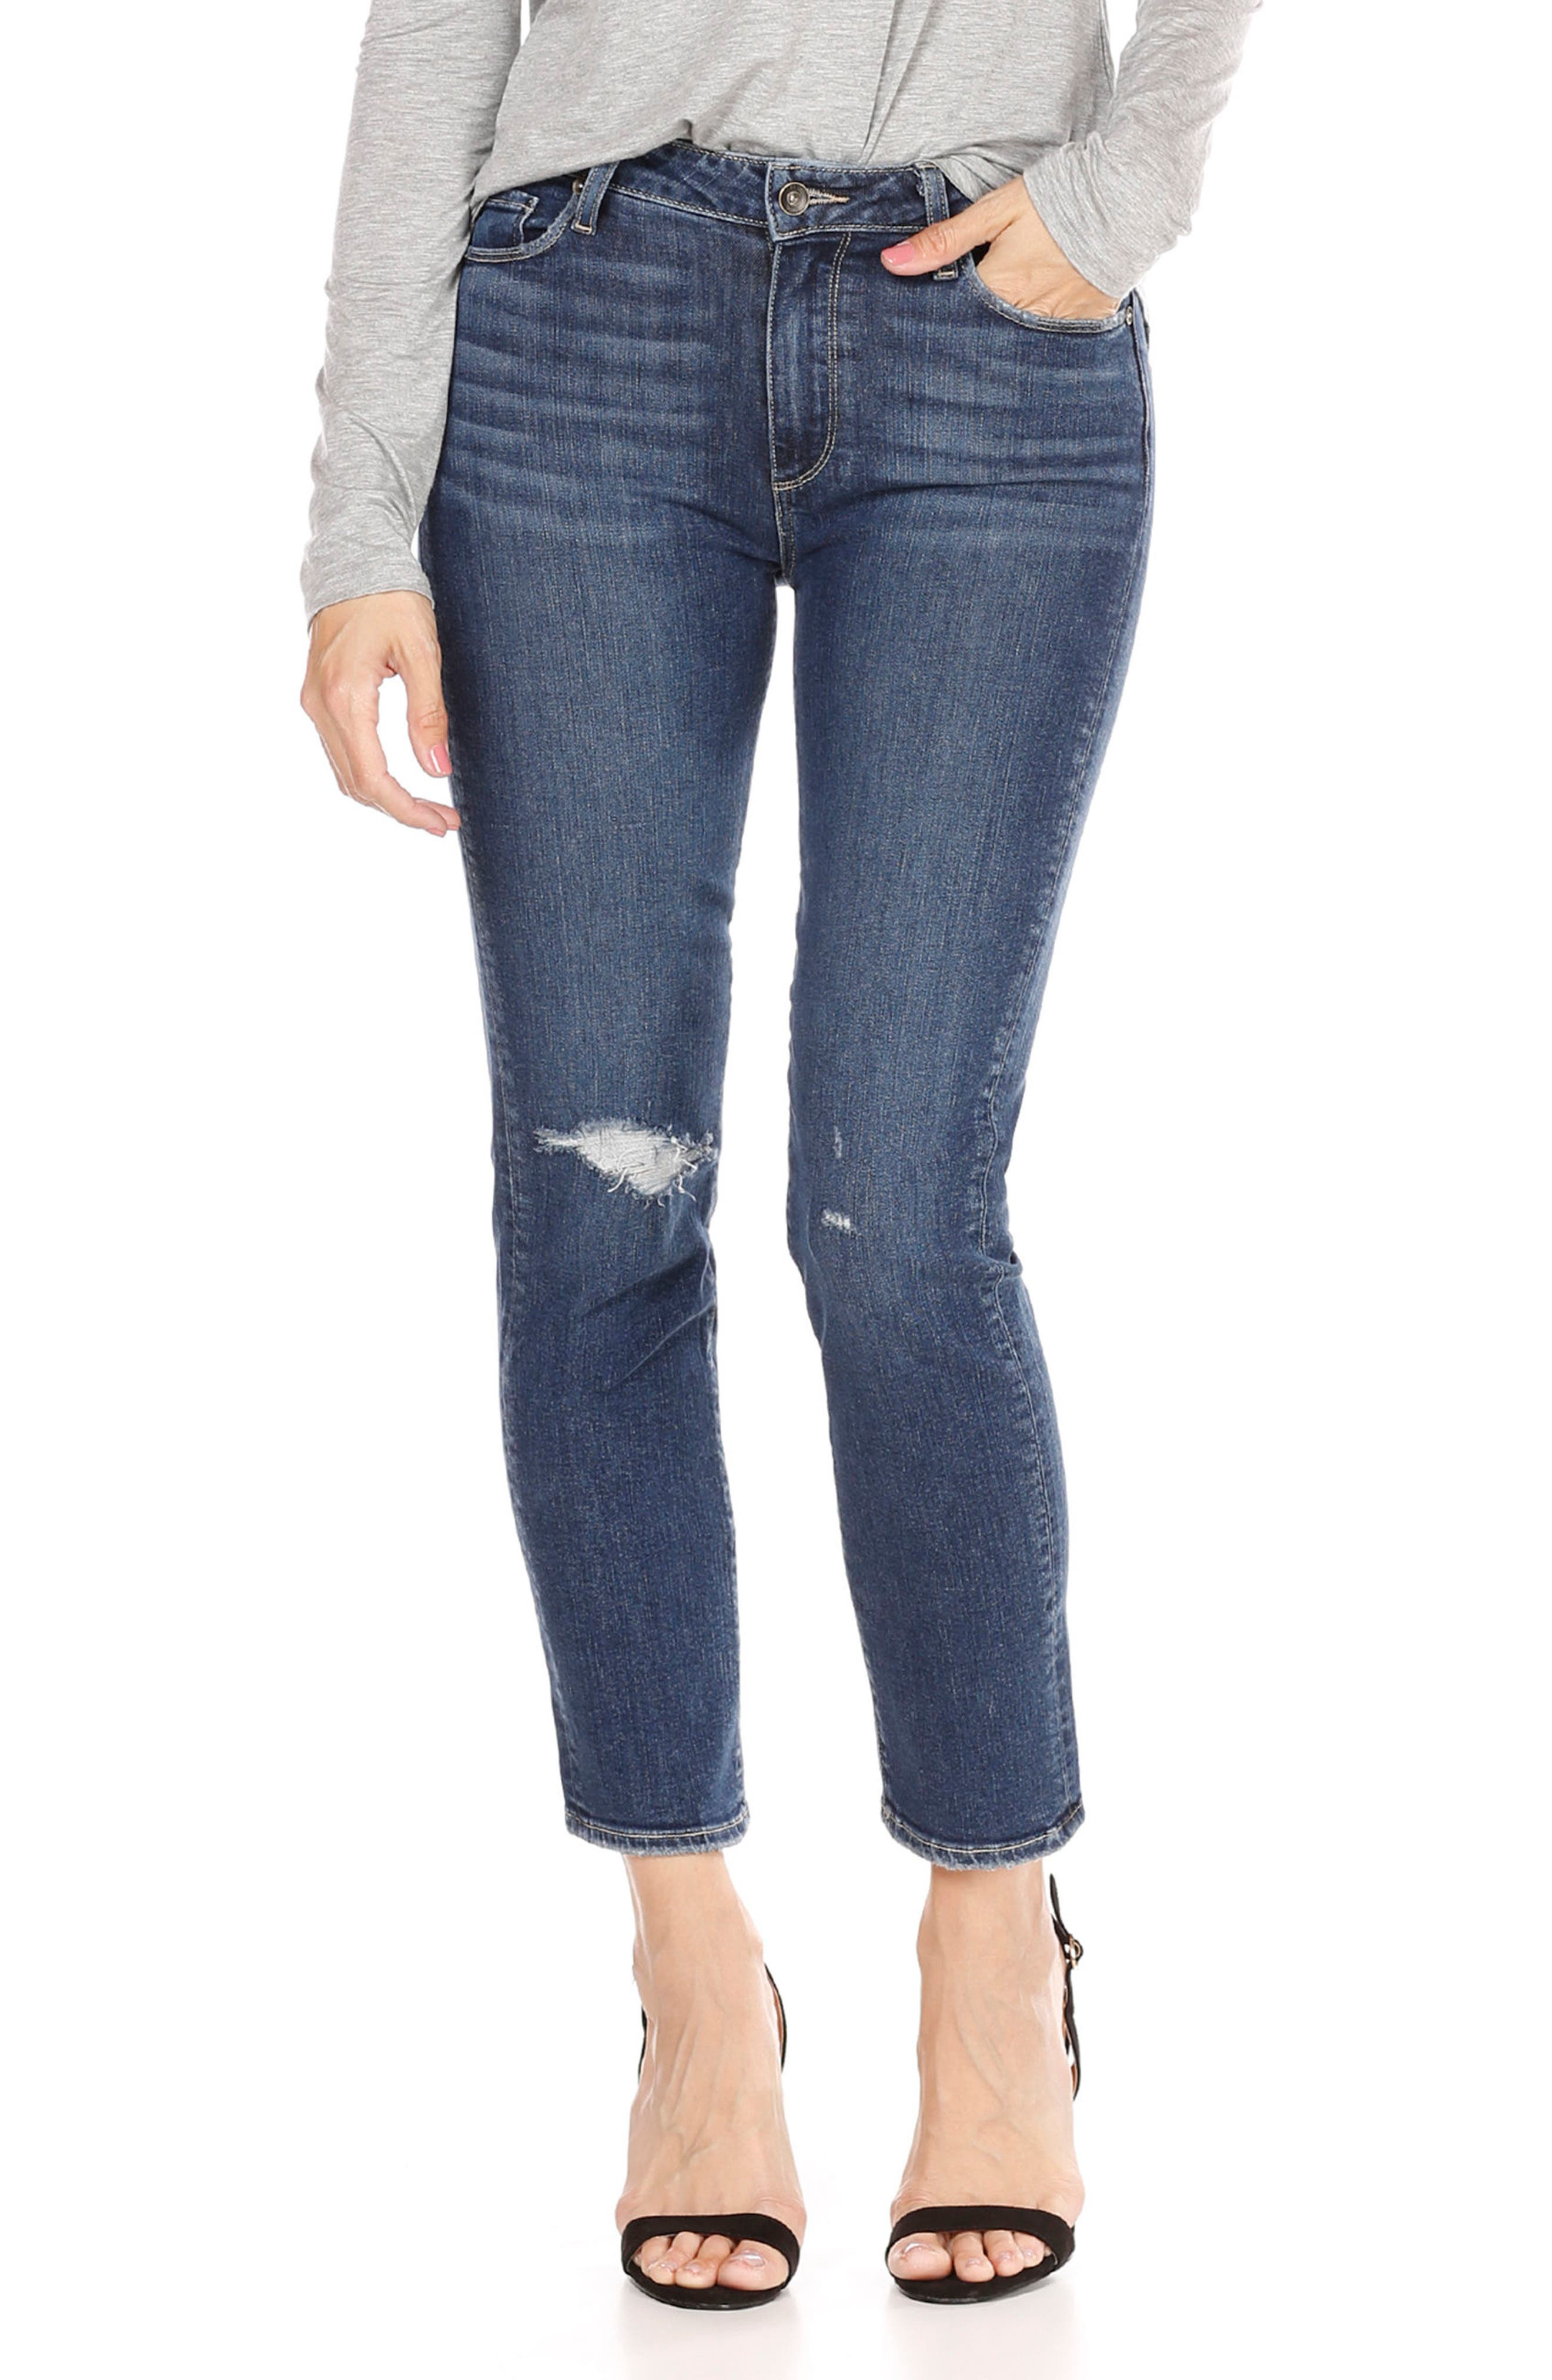 Alternate Image 1 Selected - PAIGE Jacqueline High Waist Crop Straight Leg Jeans (Addax Destructed)